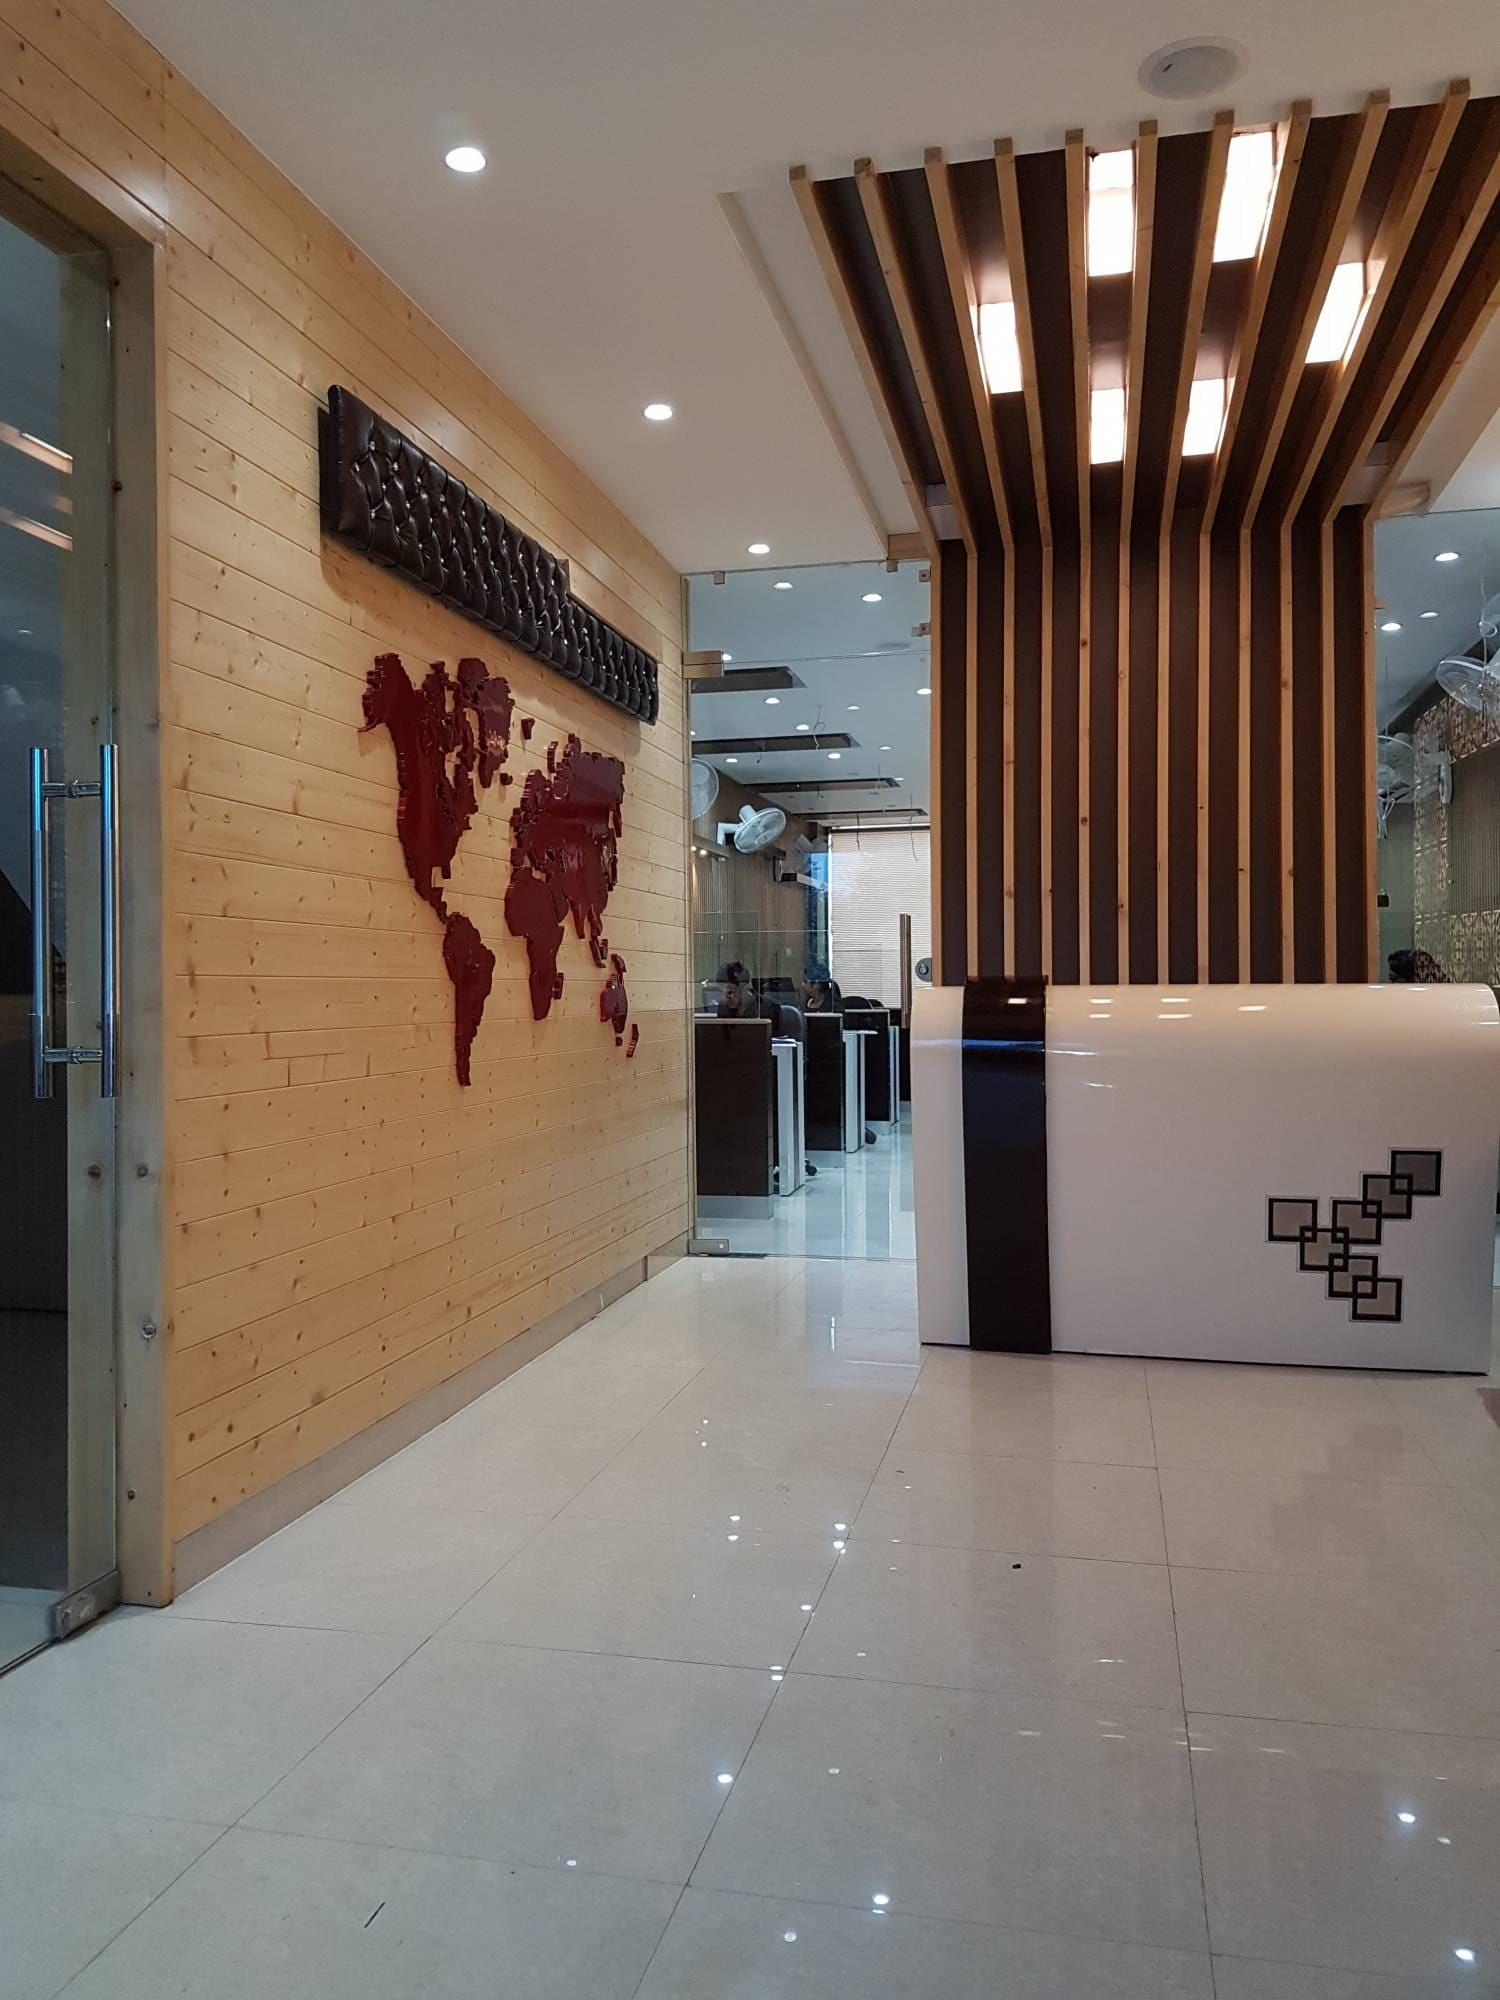 Pp Interiors Sector 38 Interior Designers In Chandigarh Justdial